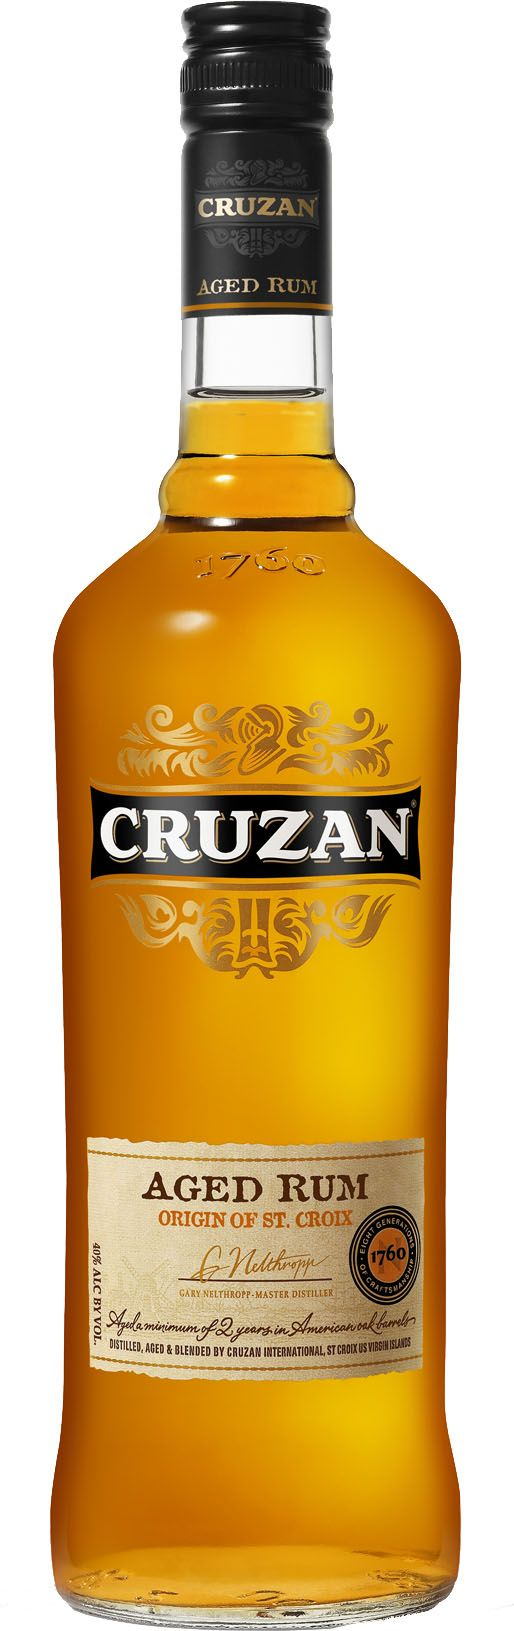 Cruzan Rum has been made in St. Croix in the US Virgin Islands for seven generations. It's a blend of rums, all of them aged for two to four years in an oak barrel. To give you a comparison,Bacardi is aged for one year in steel barrels, which is why it has no color. It's very inexpensive yet is a very good tasting rum. The aged quality of the rum actually gives cocktails an interesting complexity.  Nothing fancy here.